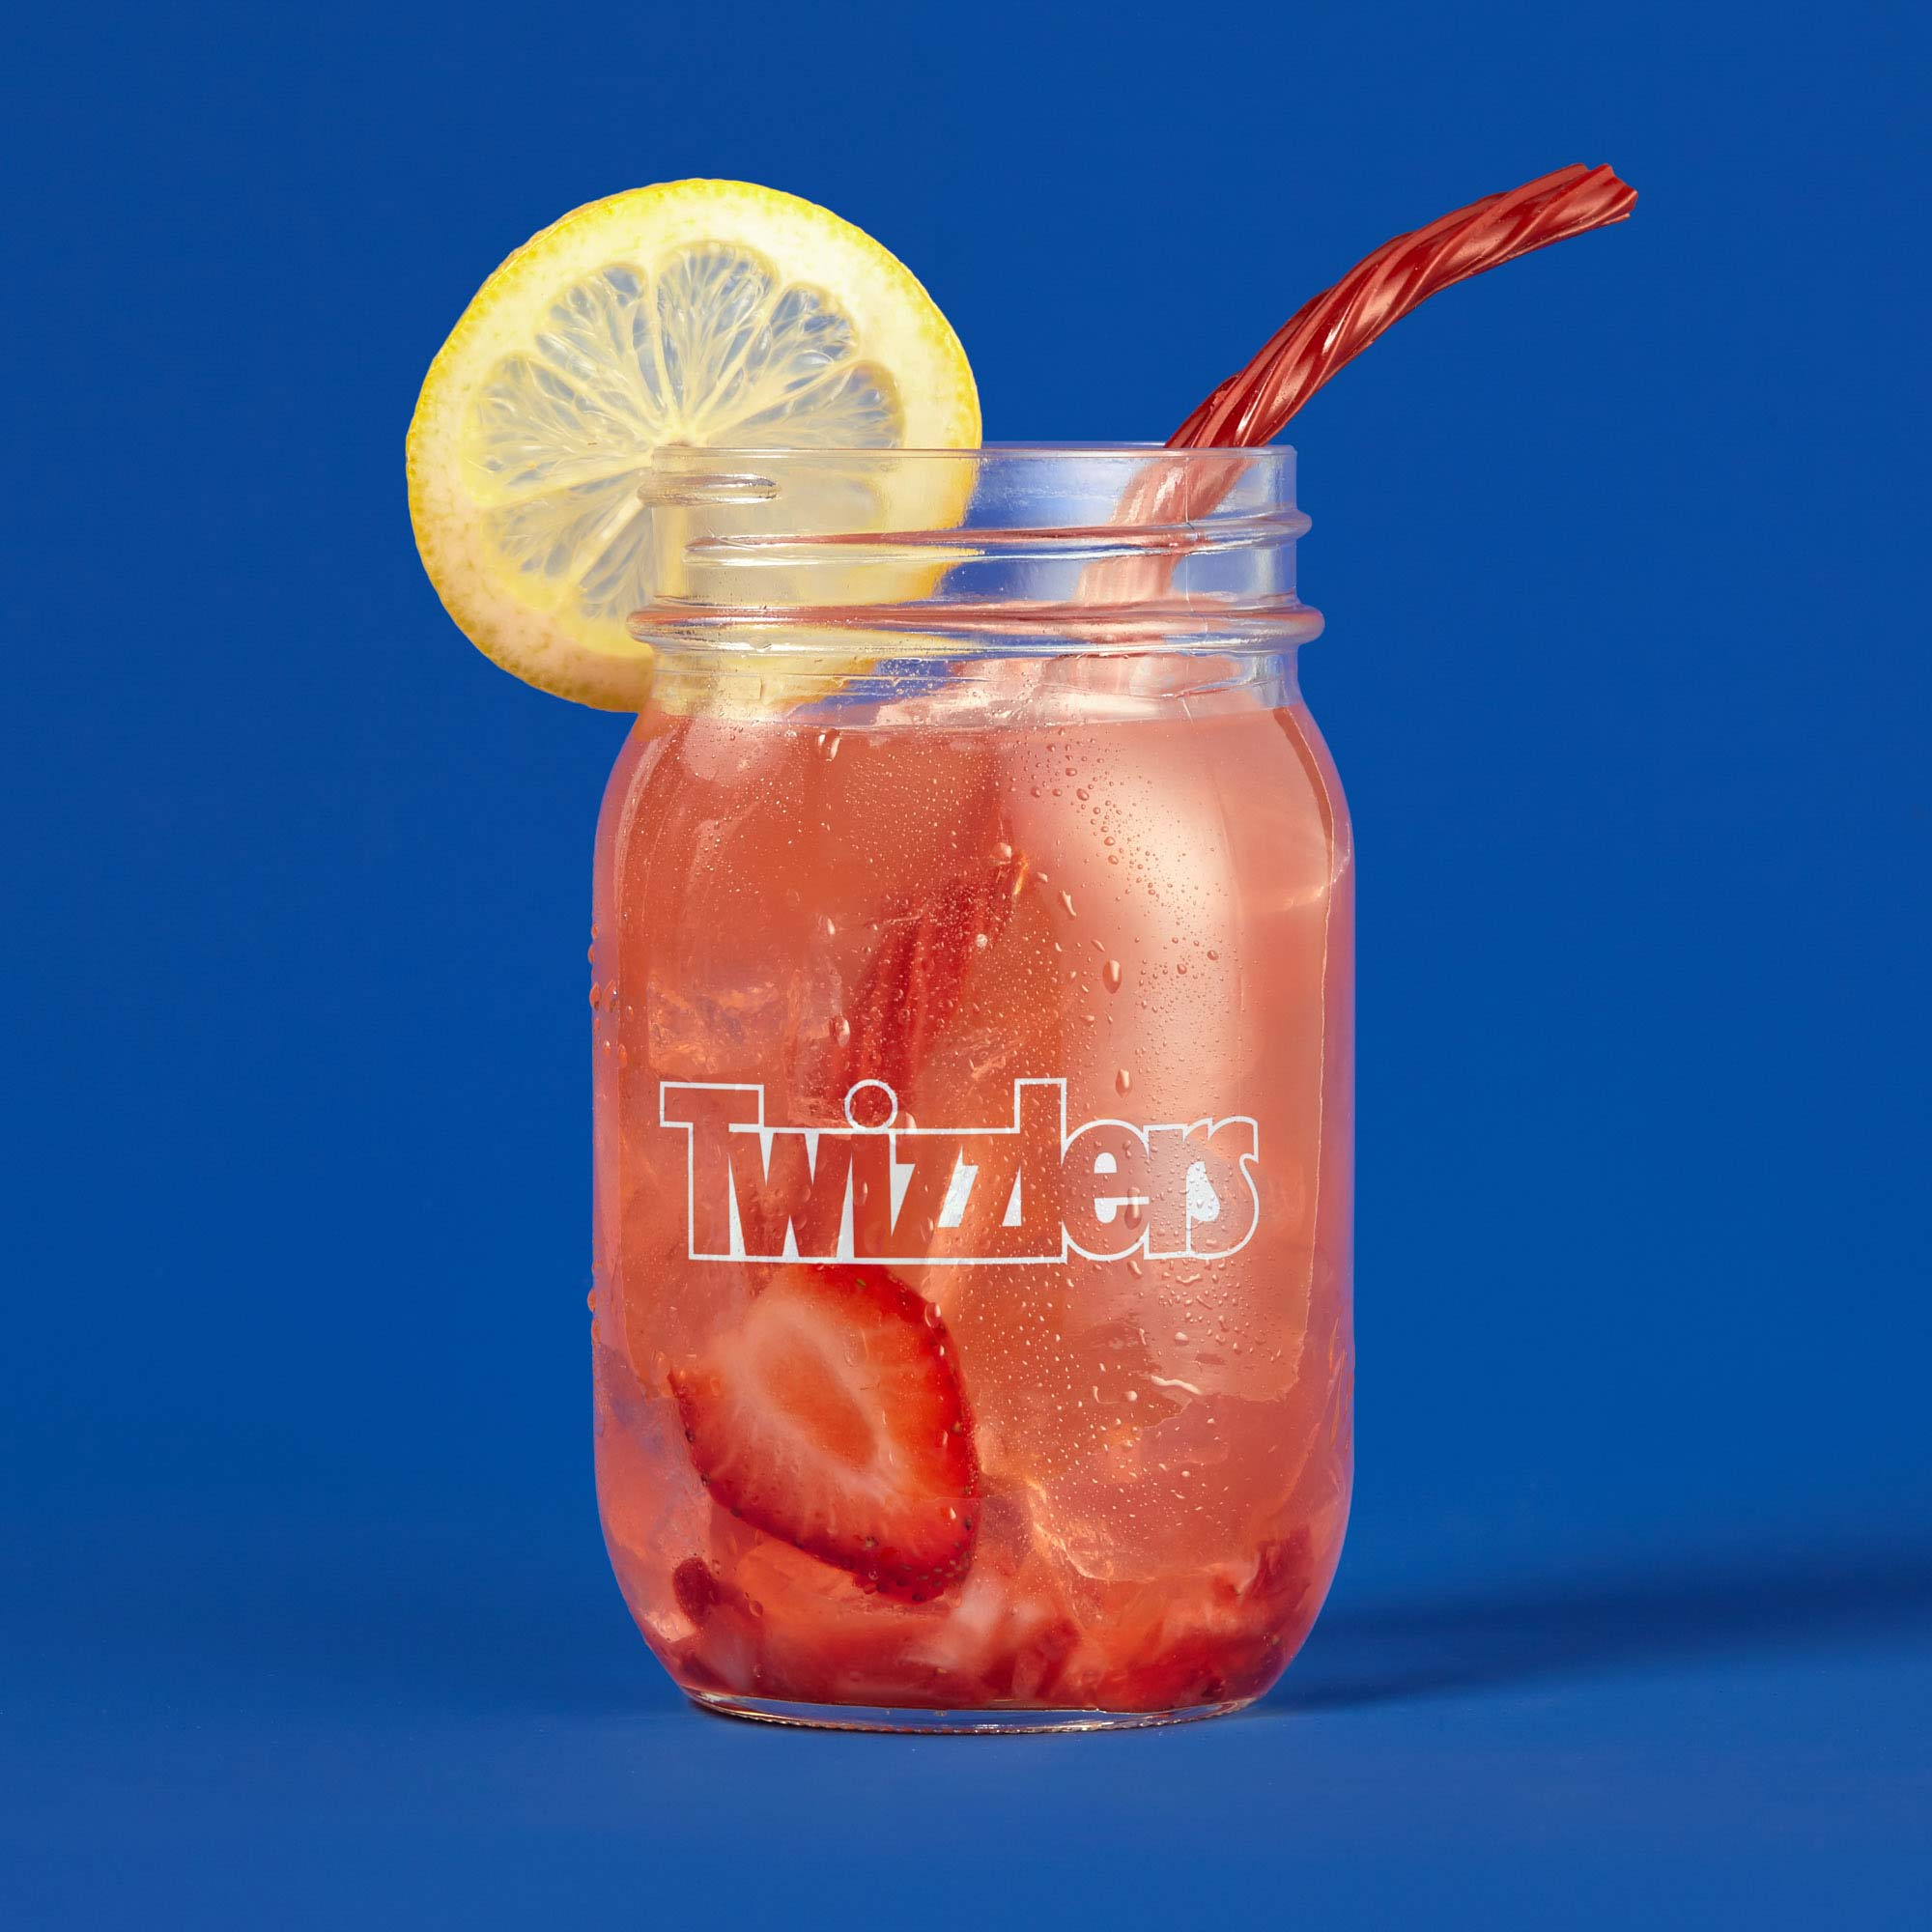 Twizzlers straw in pink lemonade on blue background | Food Photography | Studio Photography | Social | Still Life Photography shot in Boulder, Colorado for Crispin Porter + Bogusky